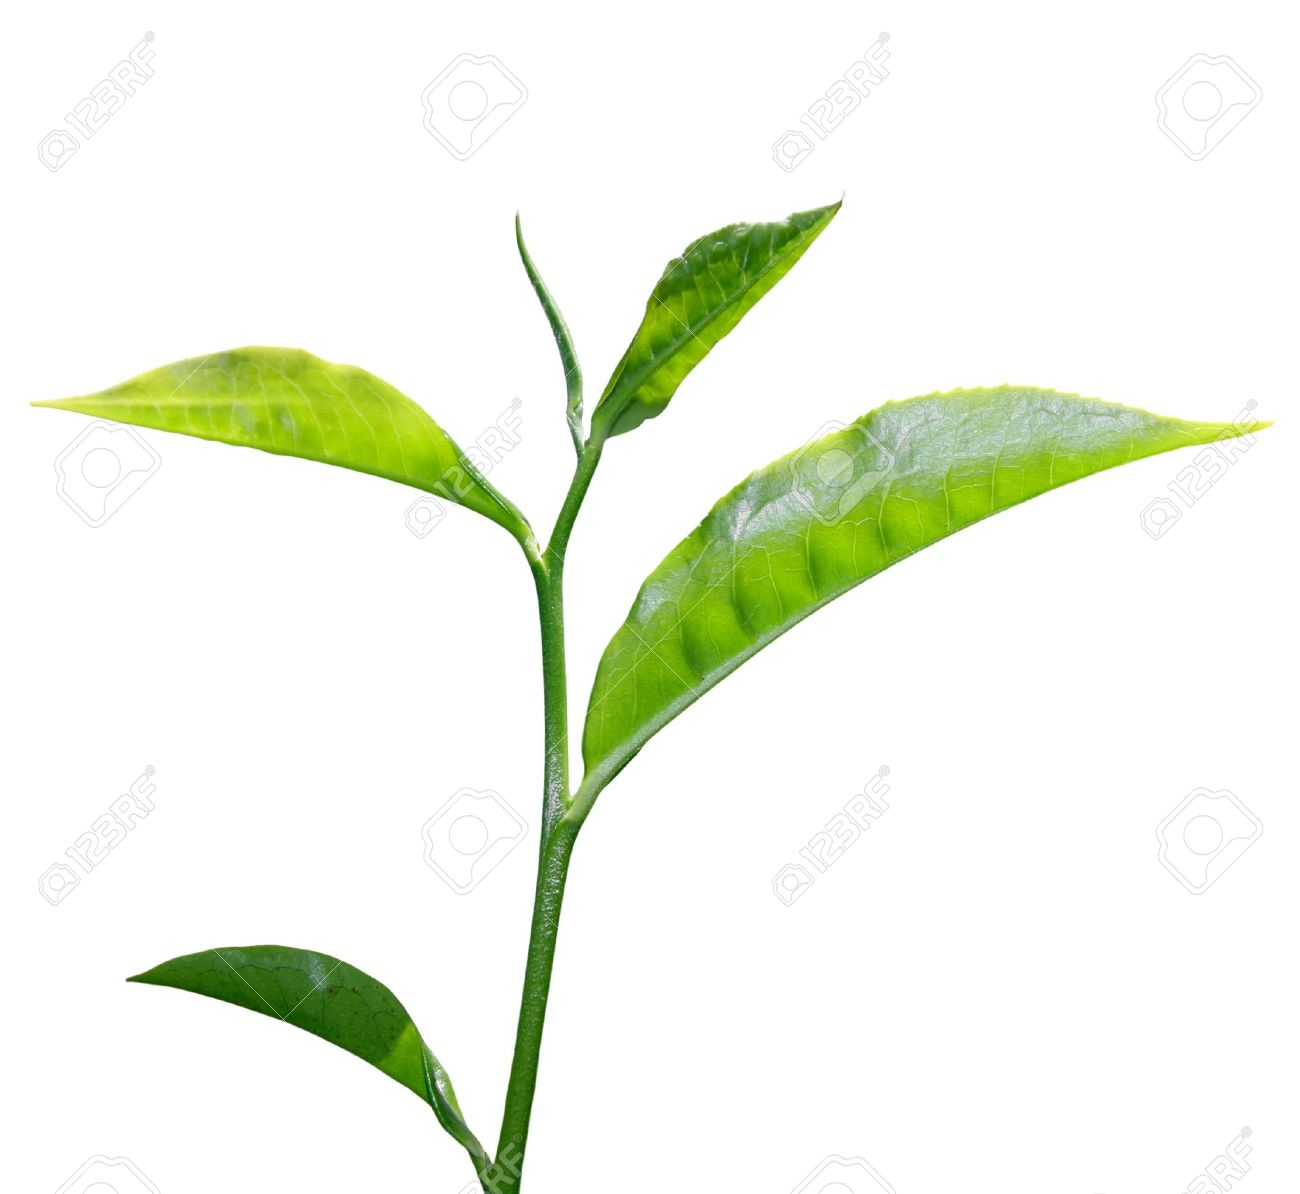 fresh green tea leaf isolated on white background Stock Photo - 4833402